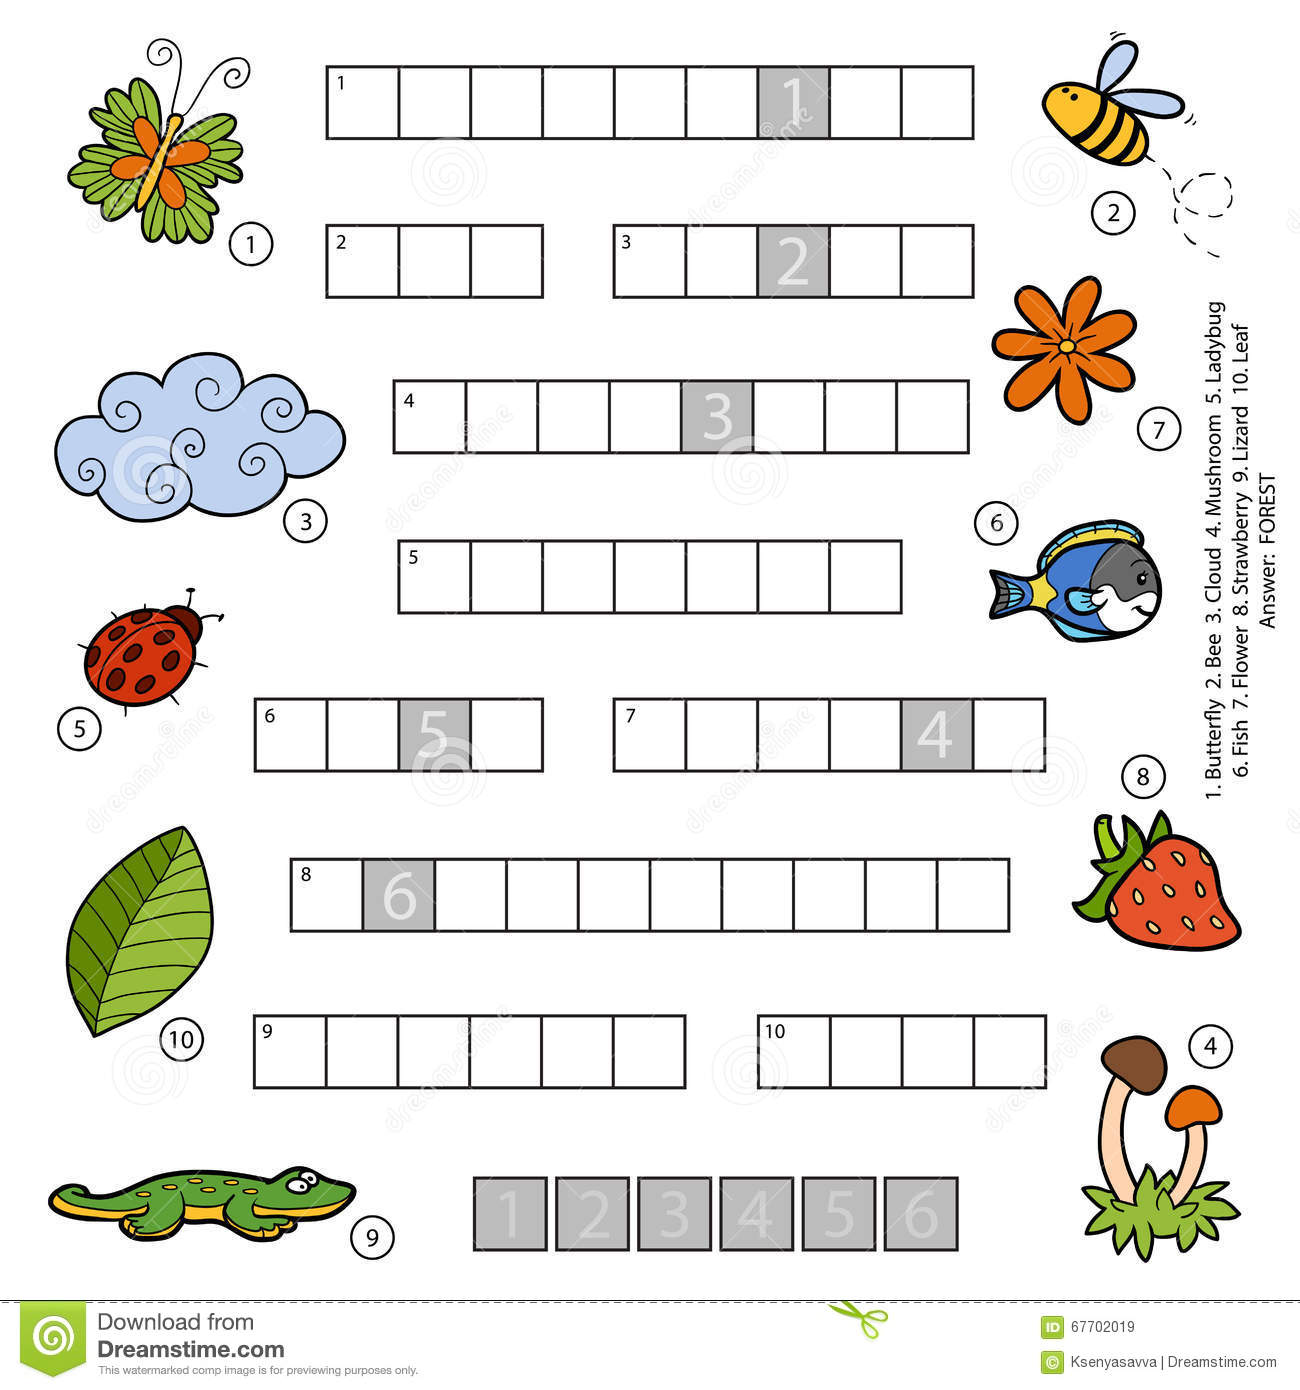 Game with shapes of different colors crossword - Vector Color Crossword For Children About Nature Royalty Free Stock Images